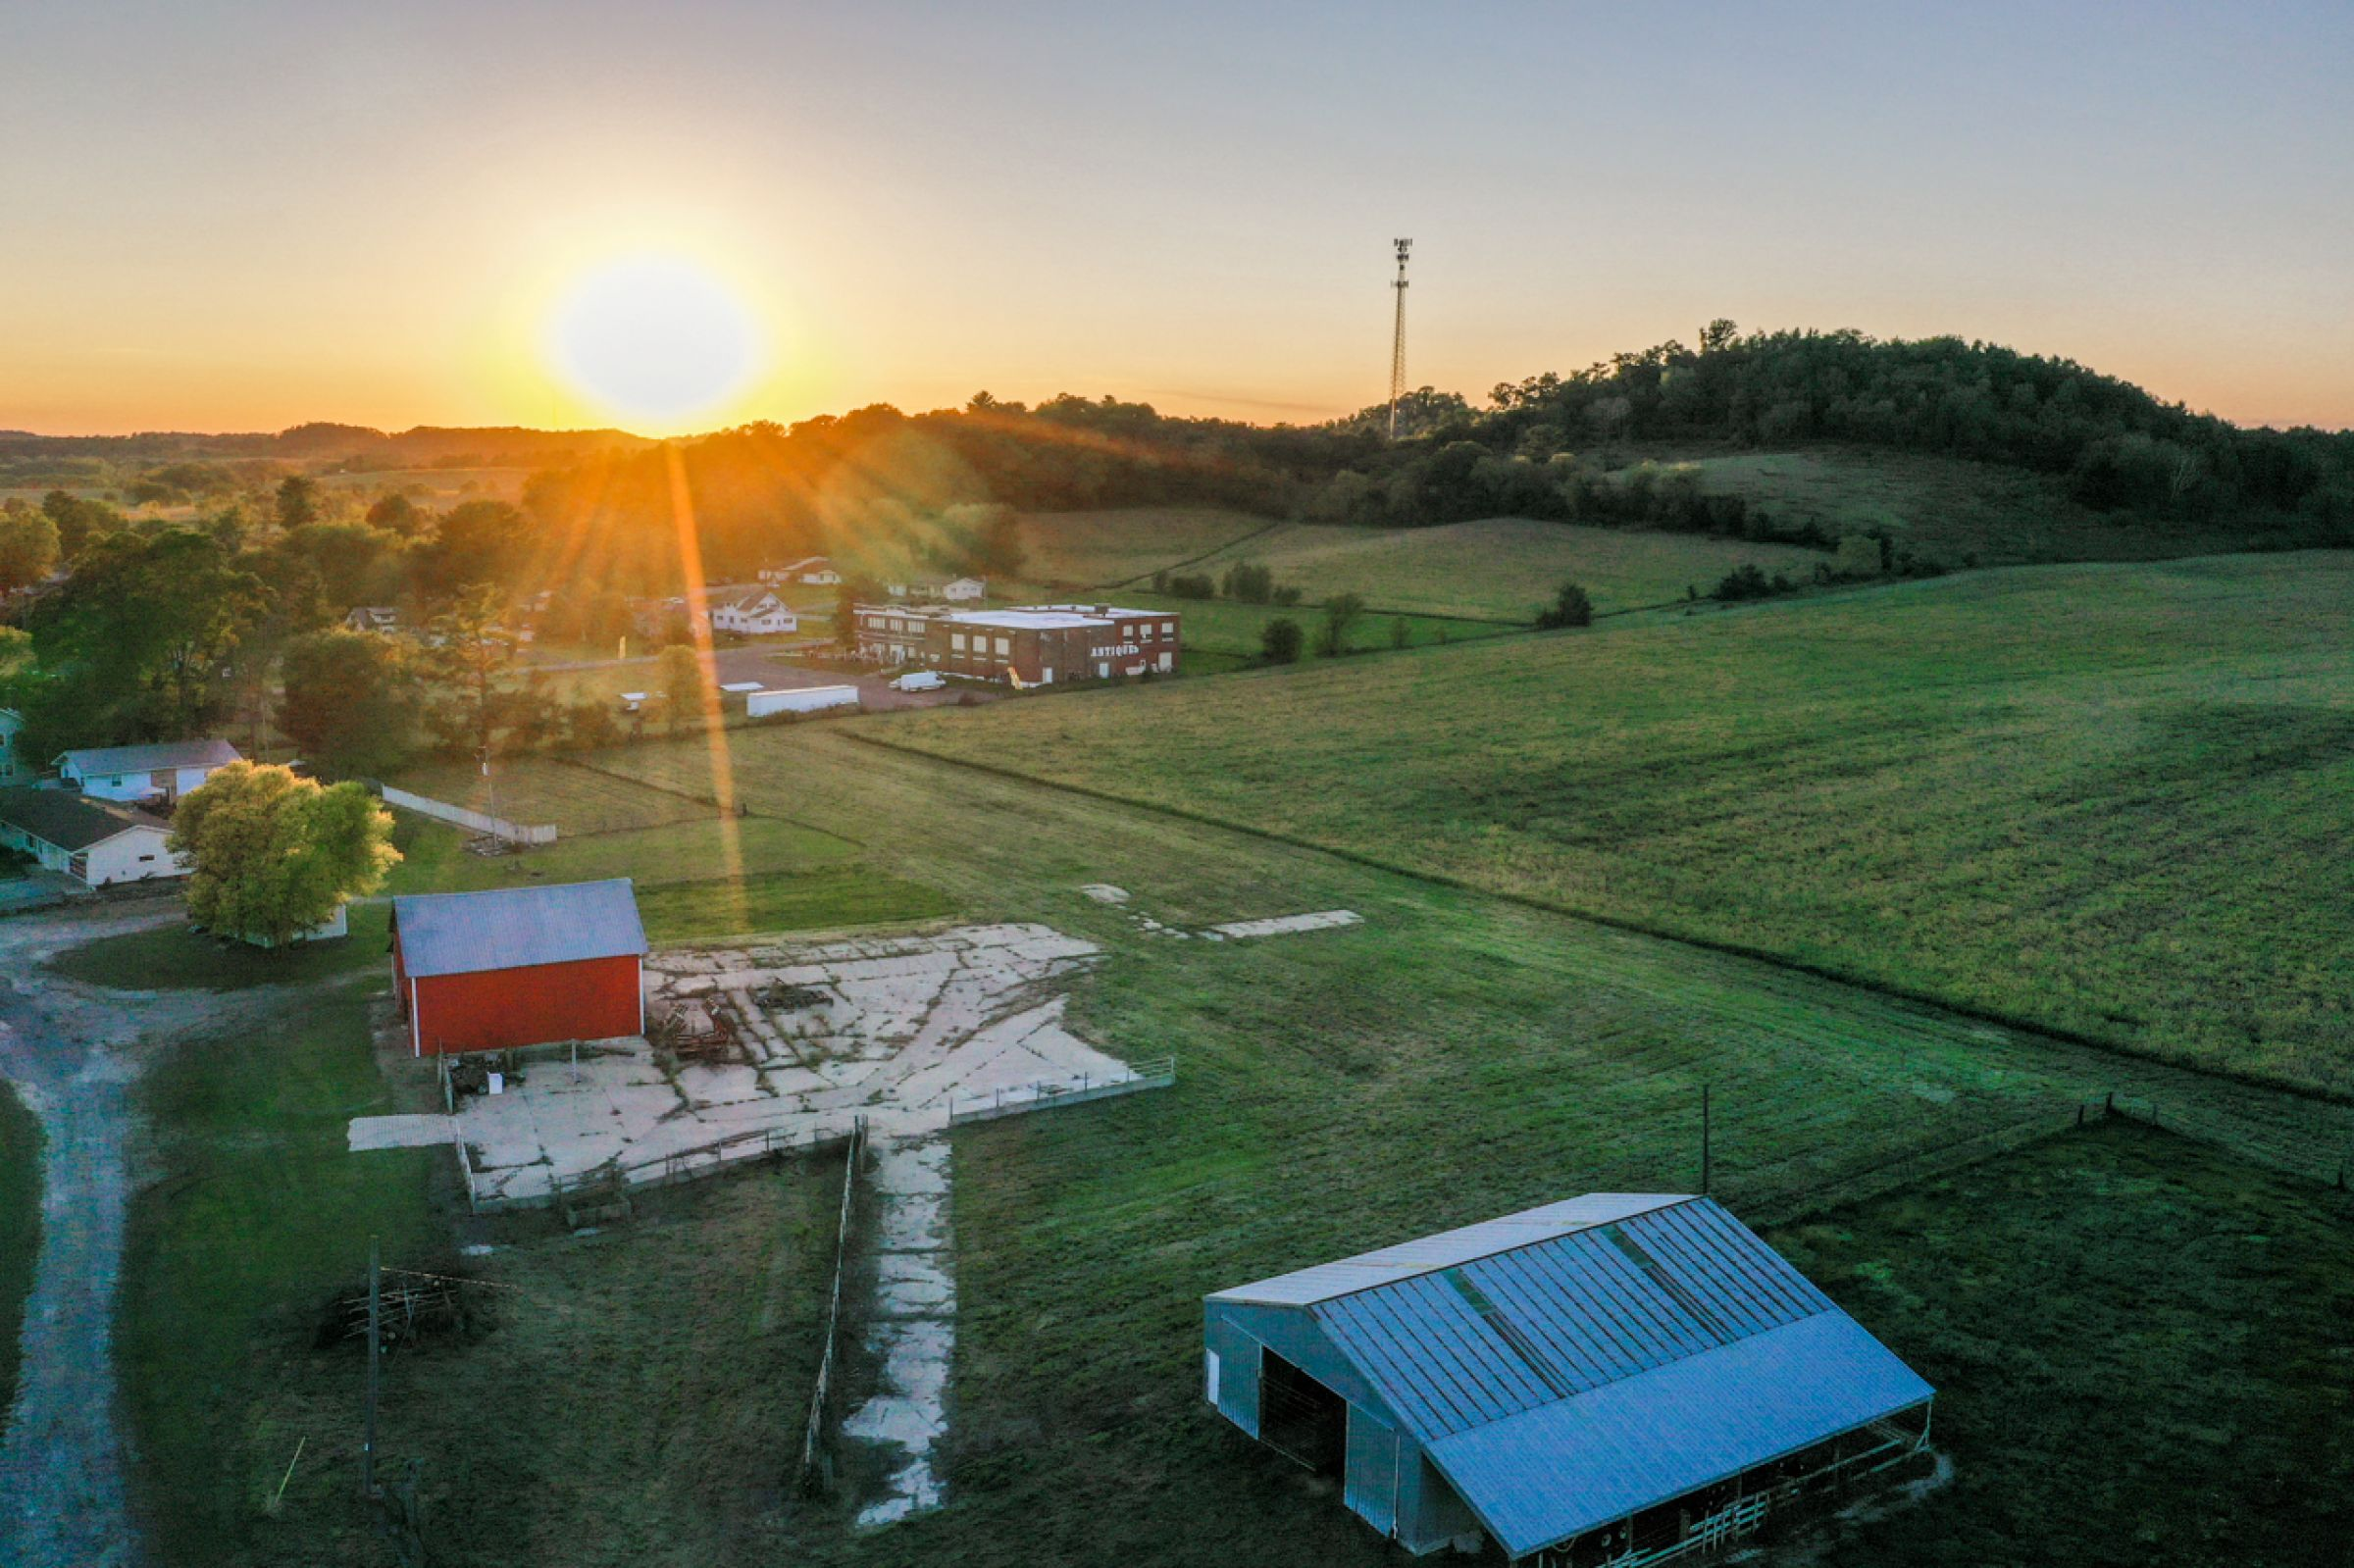 auctions-land-jackson-county-wisconsin-170-acres-listing-number-15737-3-2021-09-16-175247.jpg